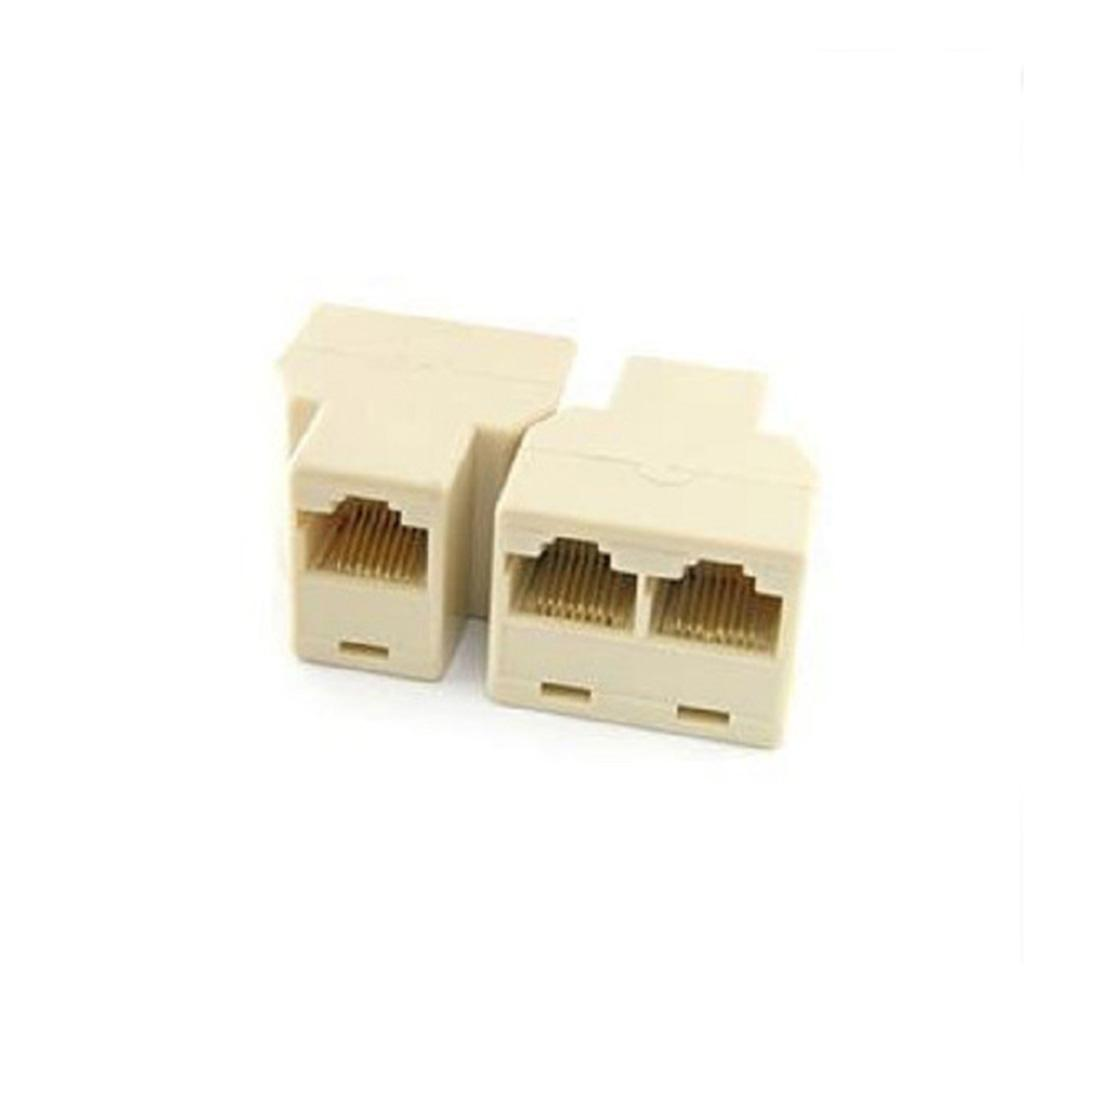 hight resolution of wholesale rj45 splitter connector cat5 lan ethernet splitter adapter 8p8c network dual buy cables cables and more from ruport 31 87 dhgate com